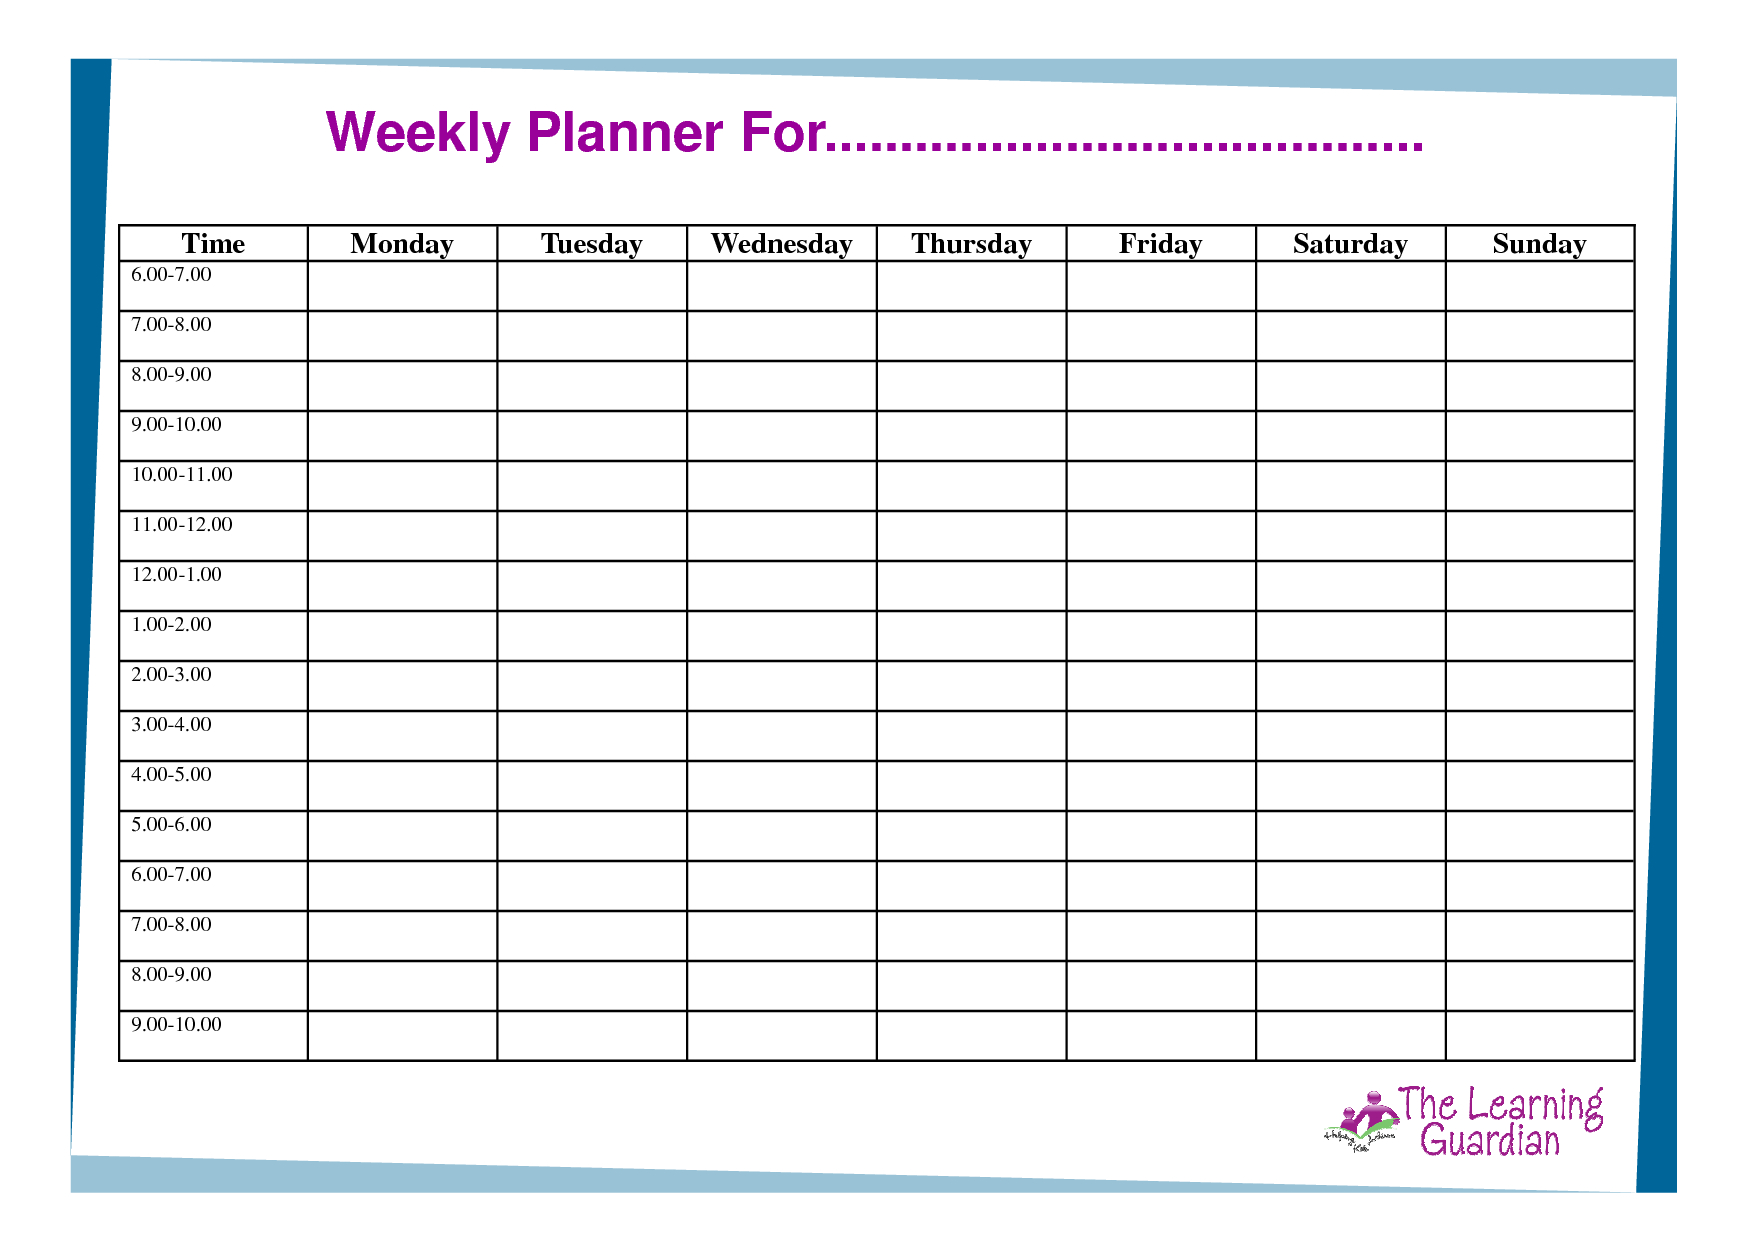 Free+Printable+Weekly+Planner+Templates In 2020 (With Images Monday - Friday Schedule Blank Template